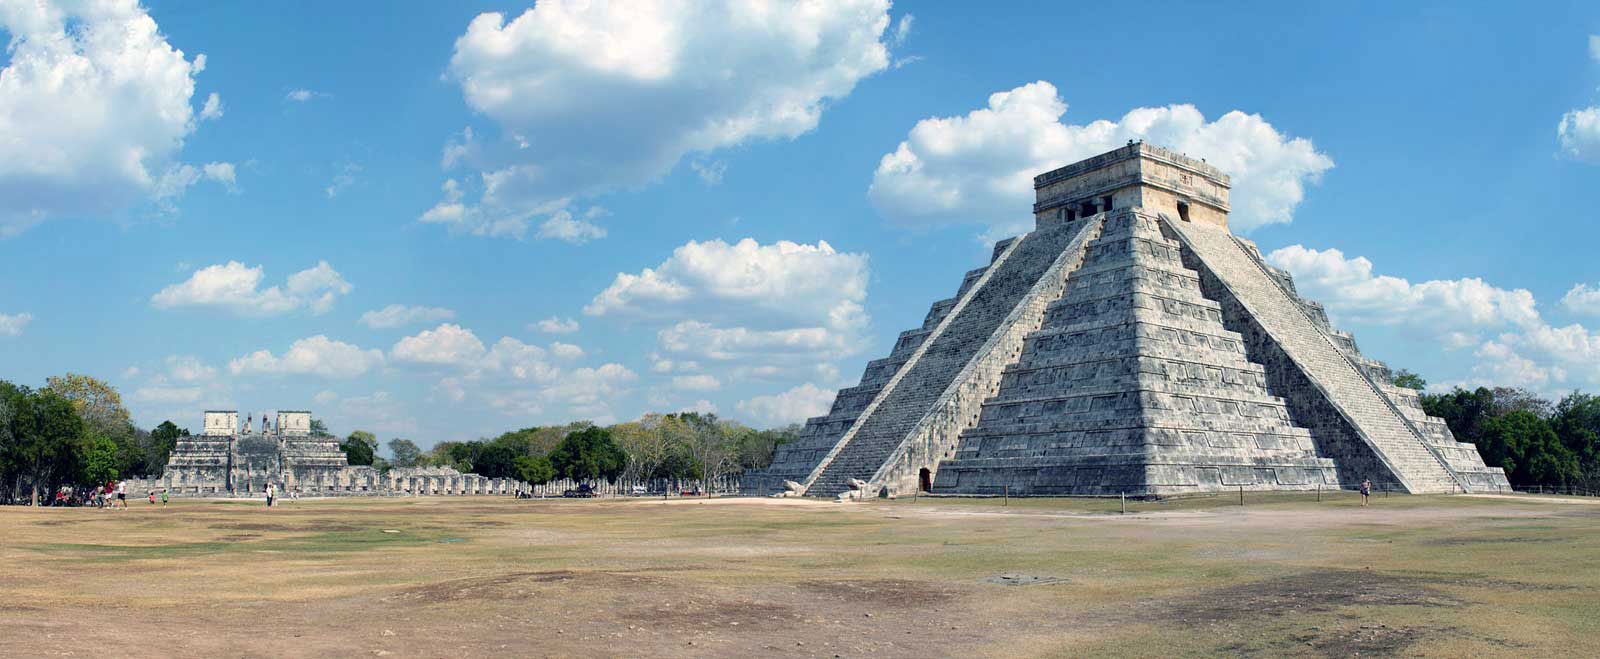 Mayan Ruins at Chichen Itza Travel and Mythology